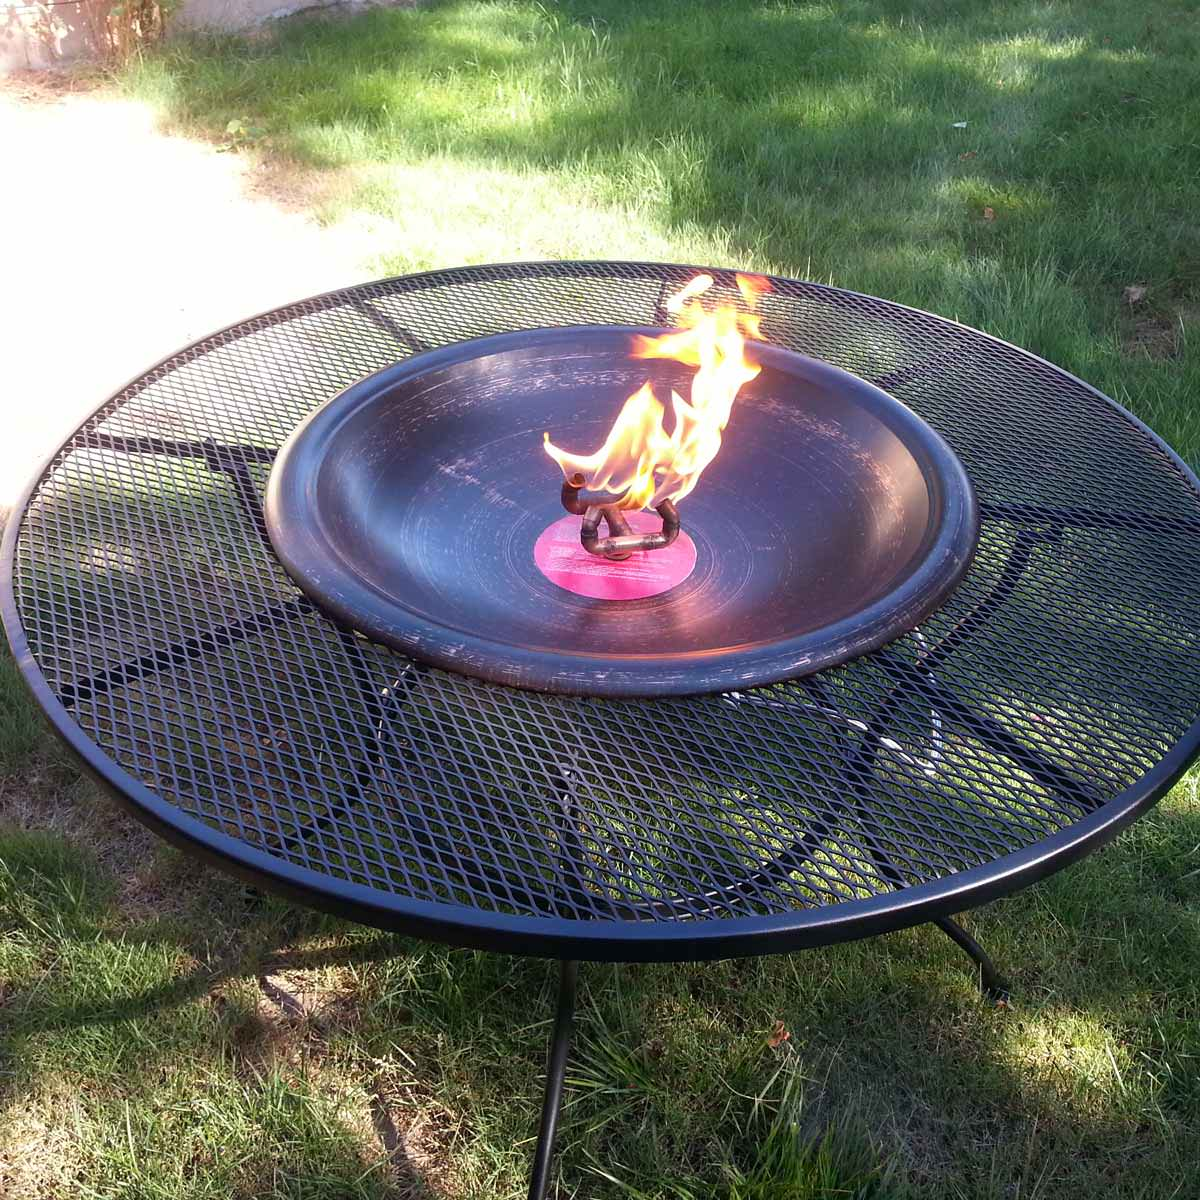 backyard fire pit ideas, backyard fire pit, fire pits, fire pit design, backyard design ideas